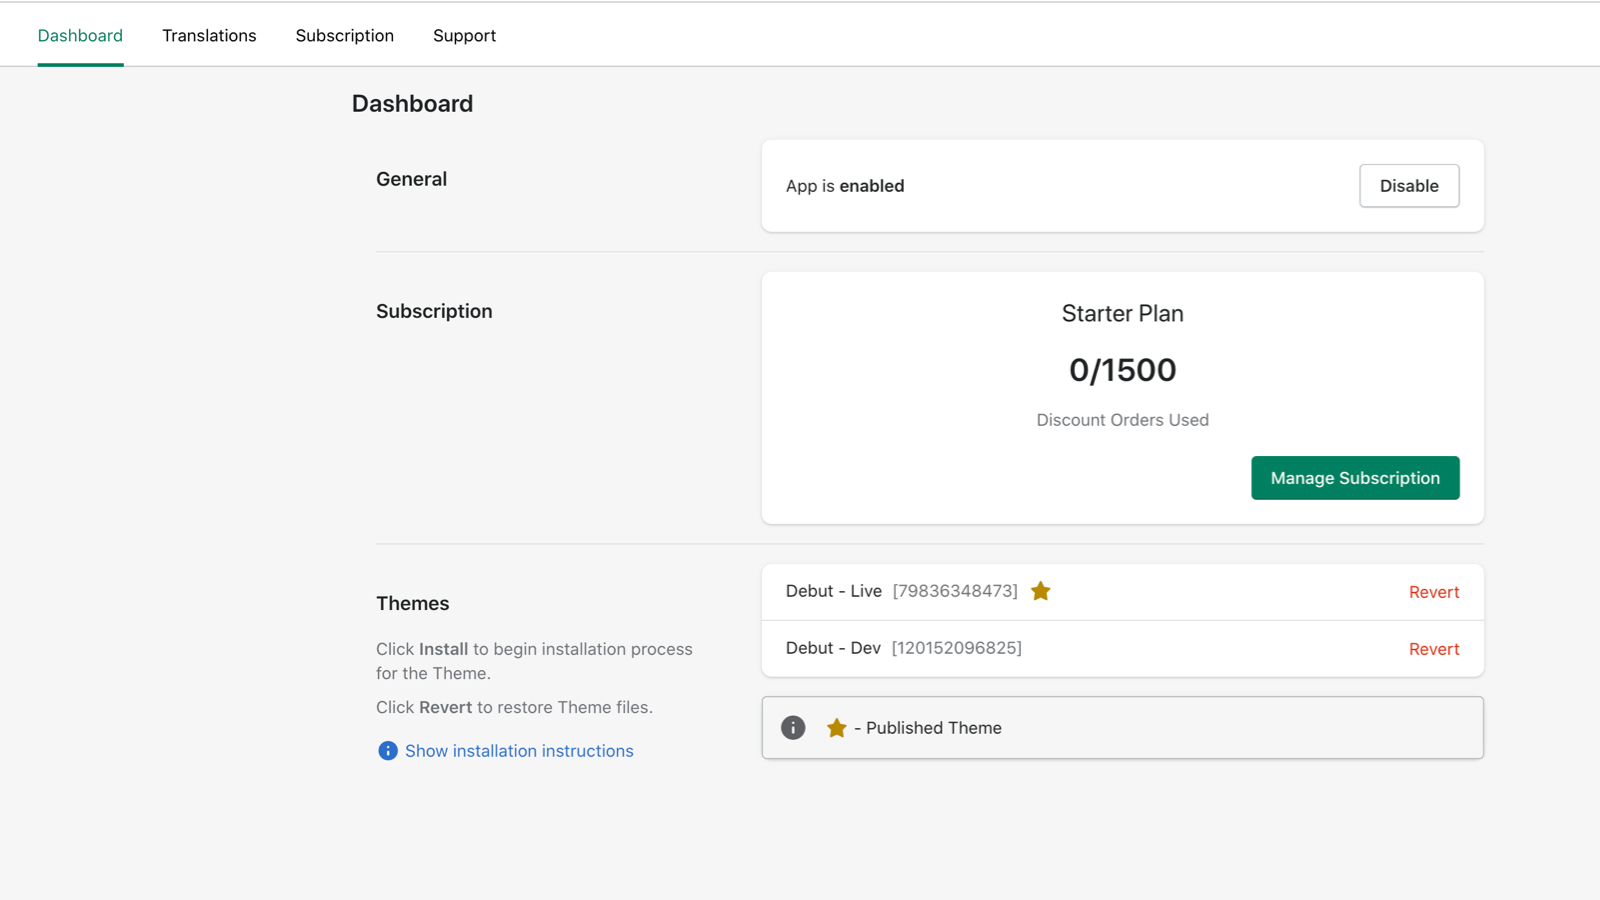 Simple dashboard for installation, subscription and enable